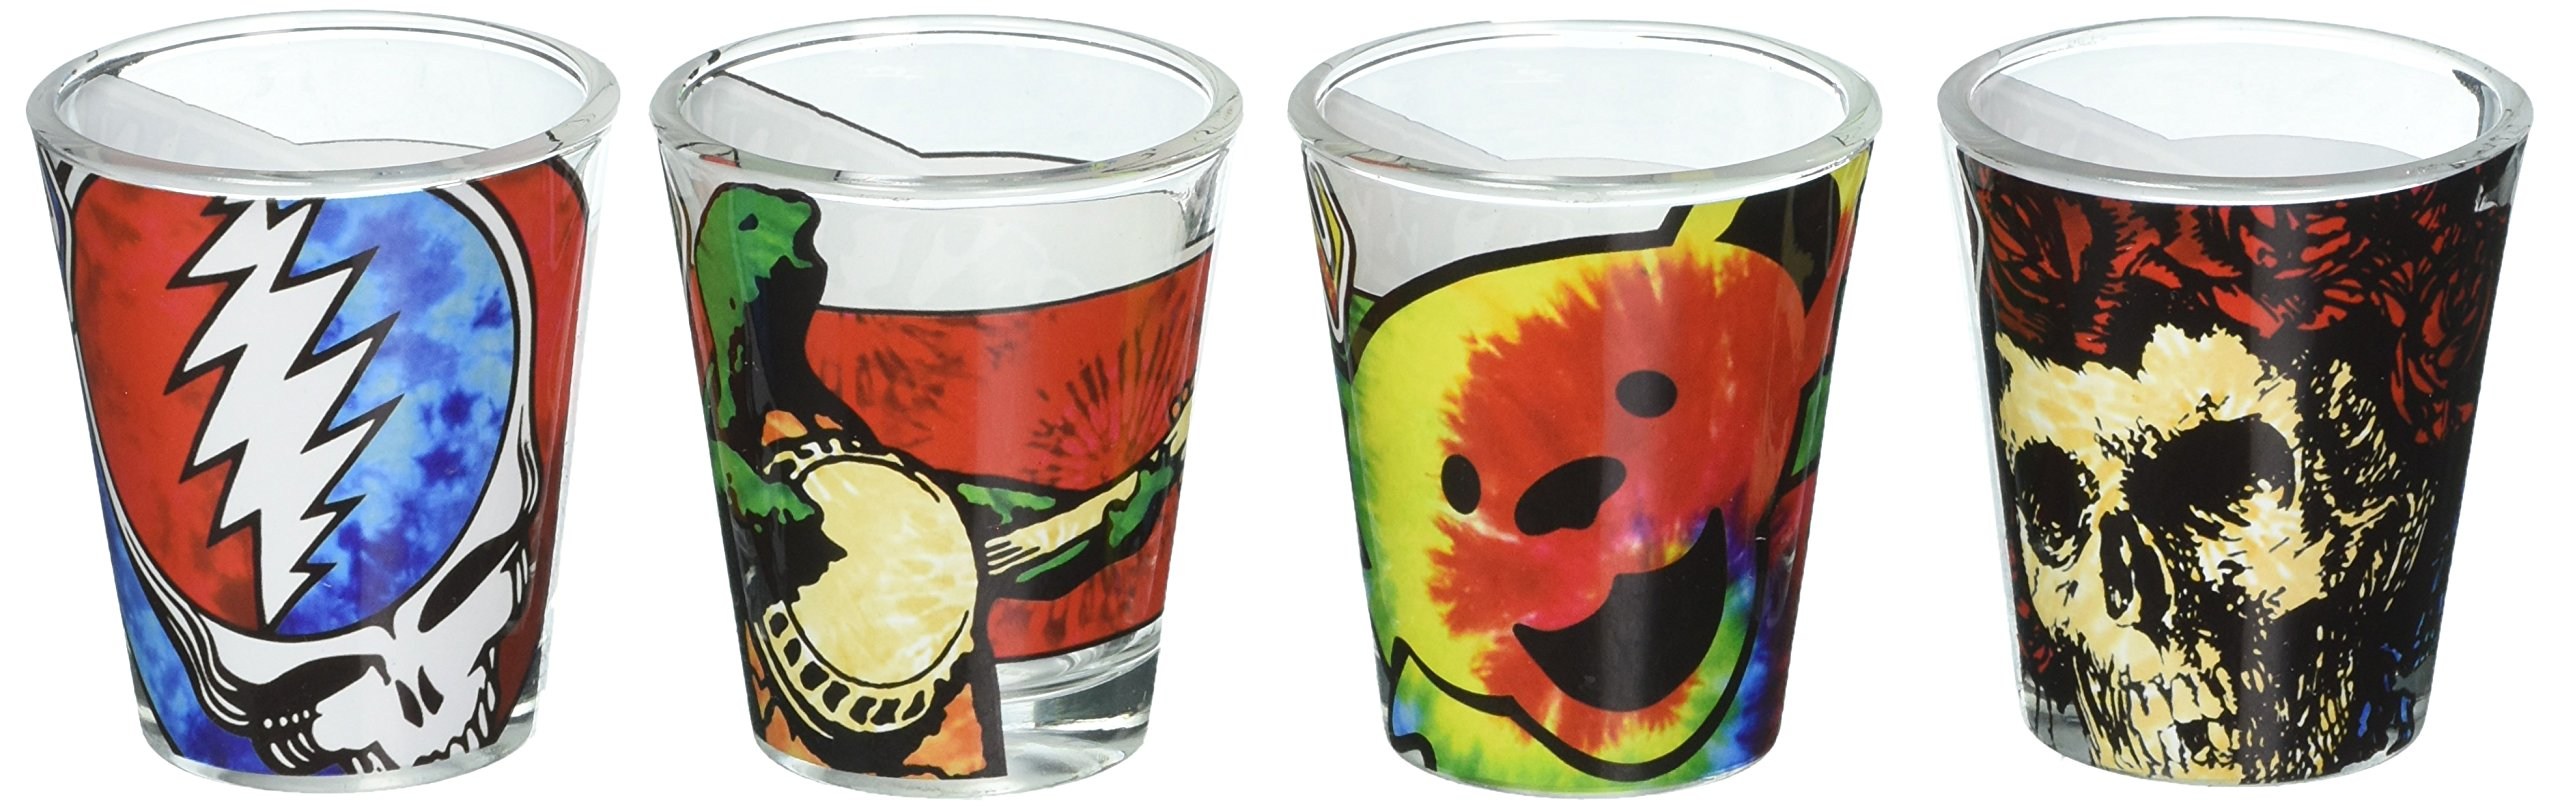 ICUP Grateful Dead Tie Dye Shot Glass (4 Pack), Clear